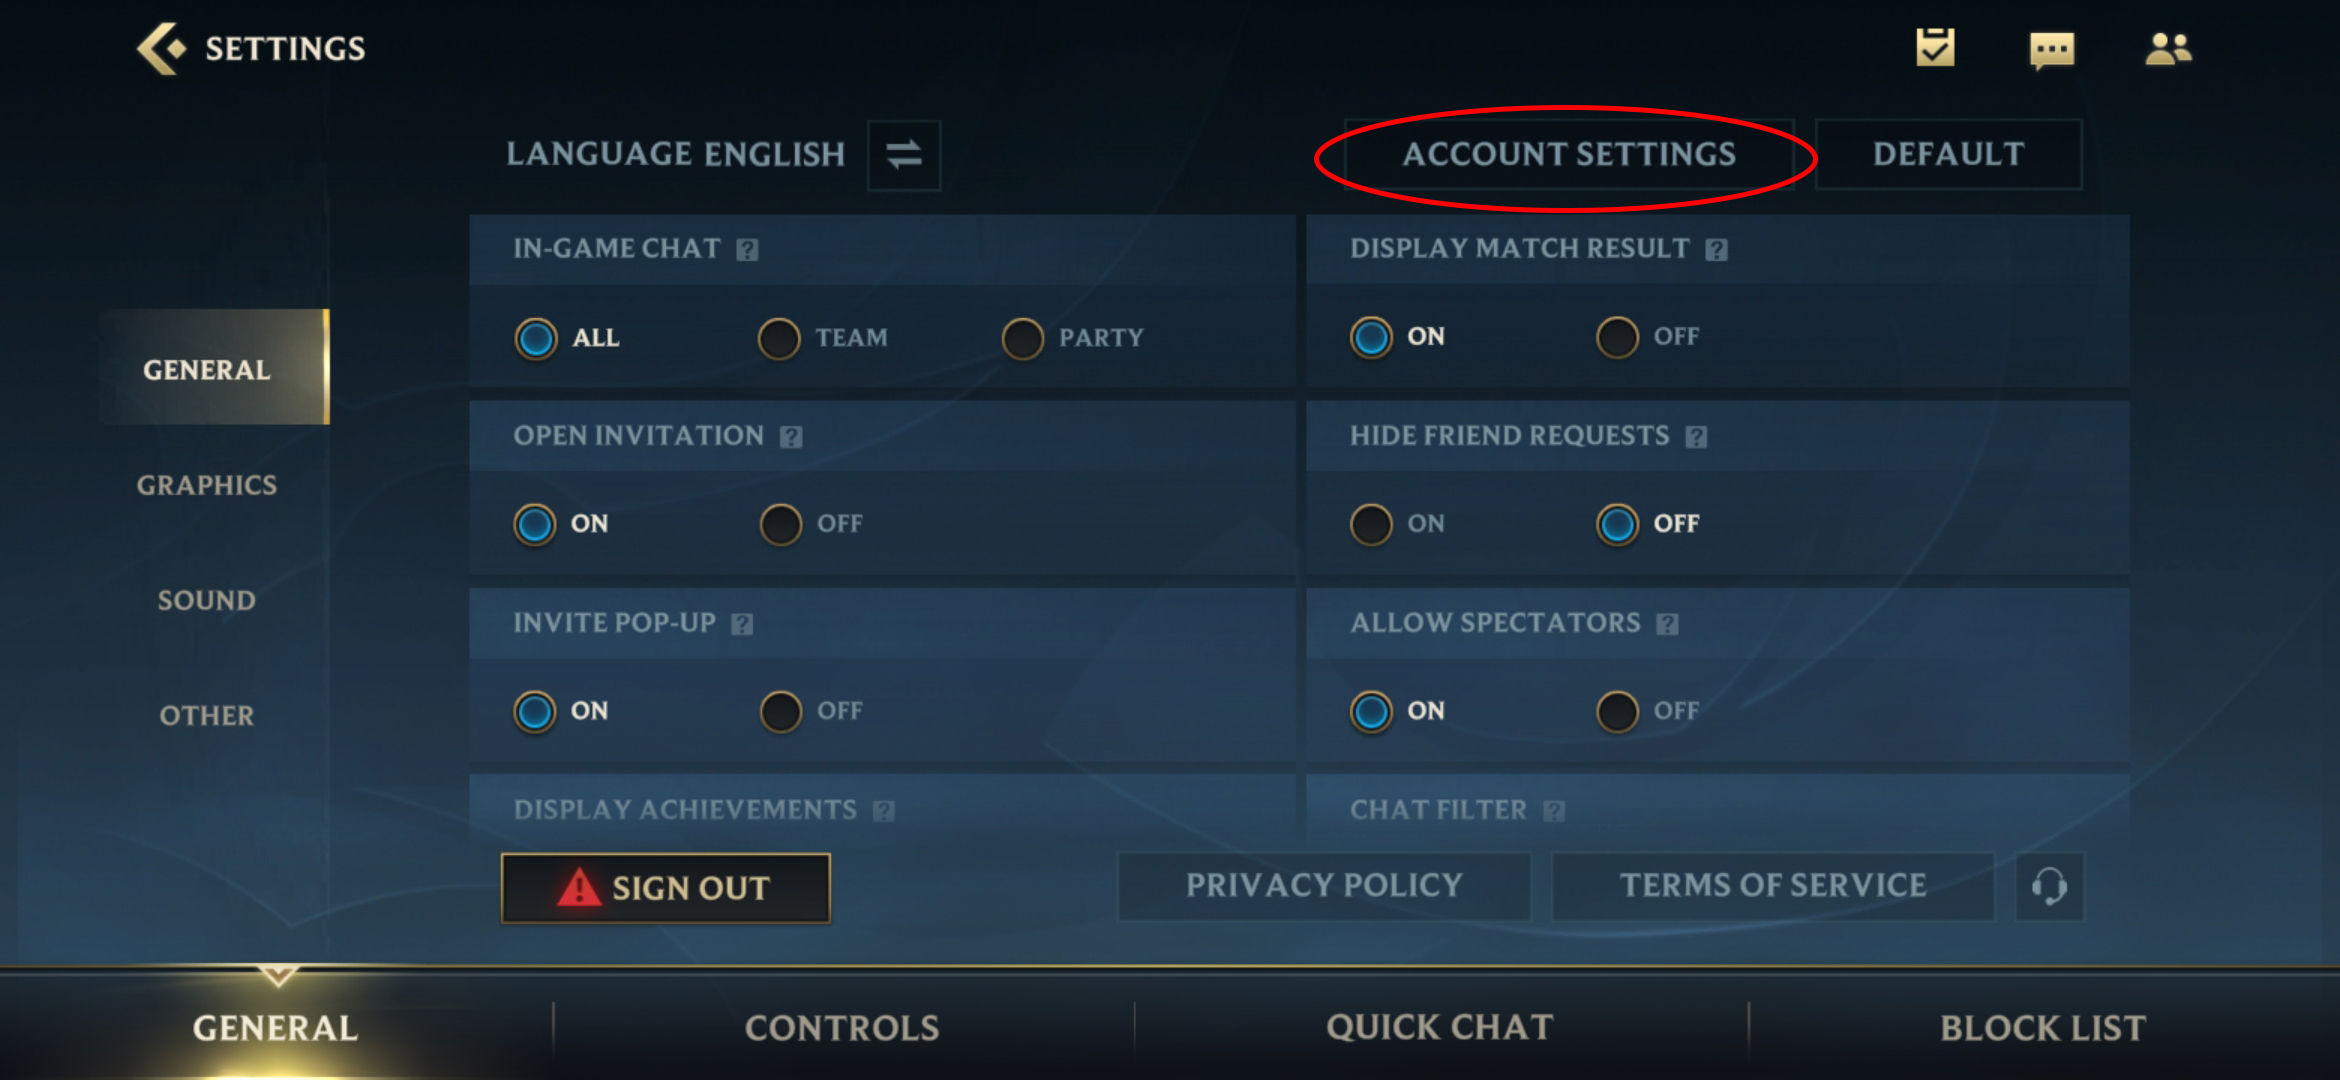 How to Change Name in Wild Rift